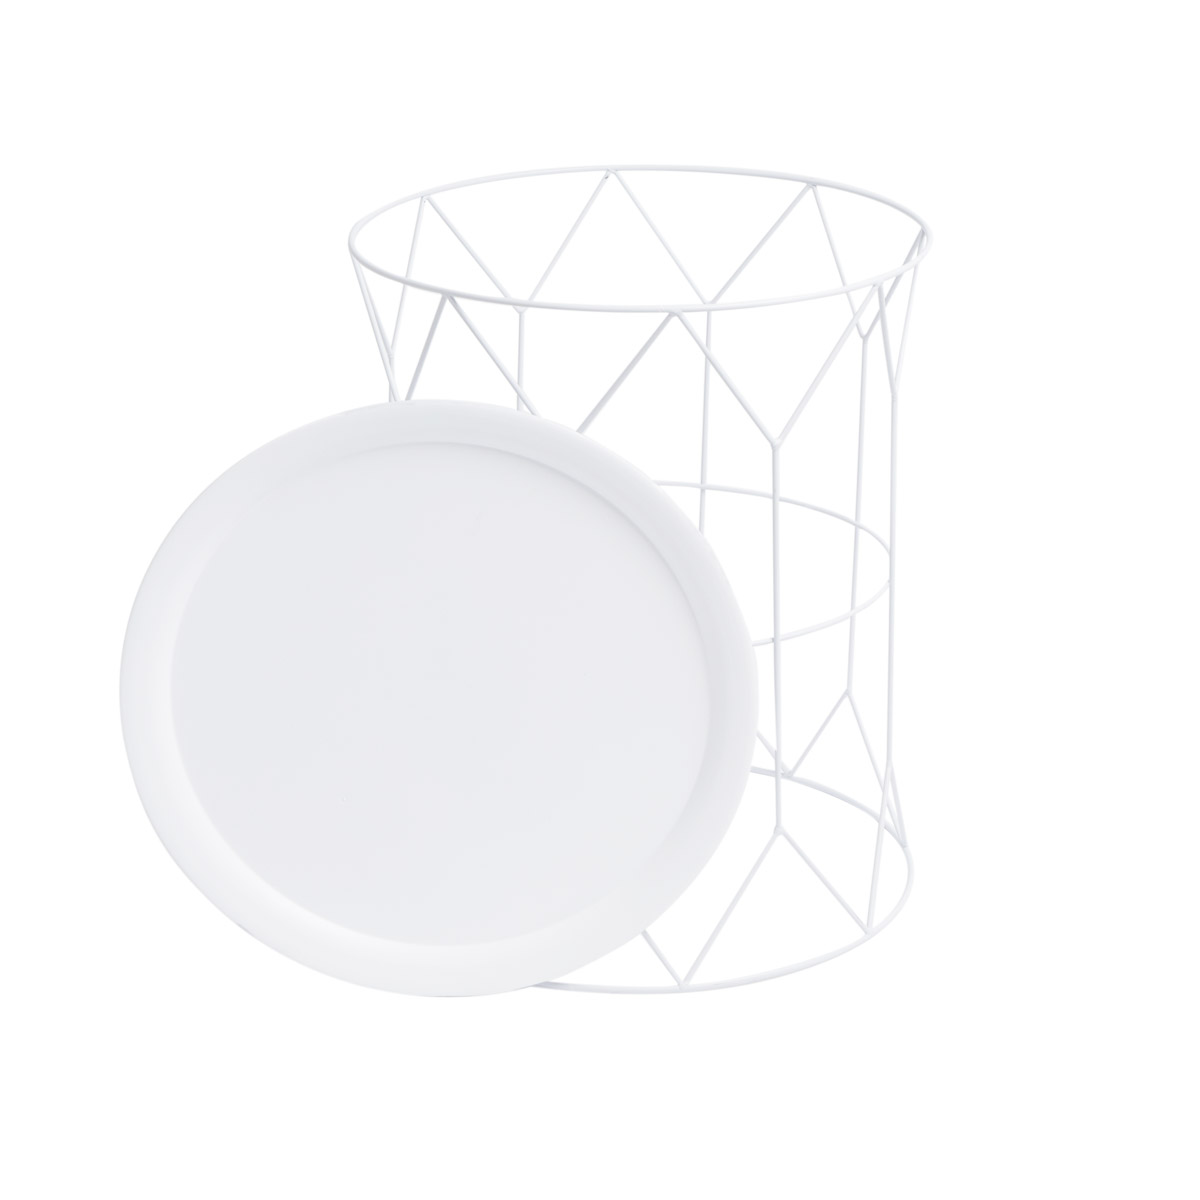 uxiliary Side table Round Metal Color White - Nordic Design Vintage Style - Bedroom Living Model Mr